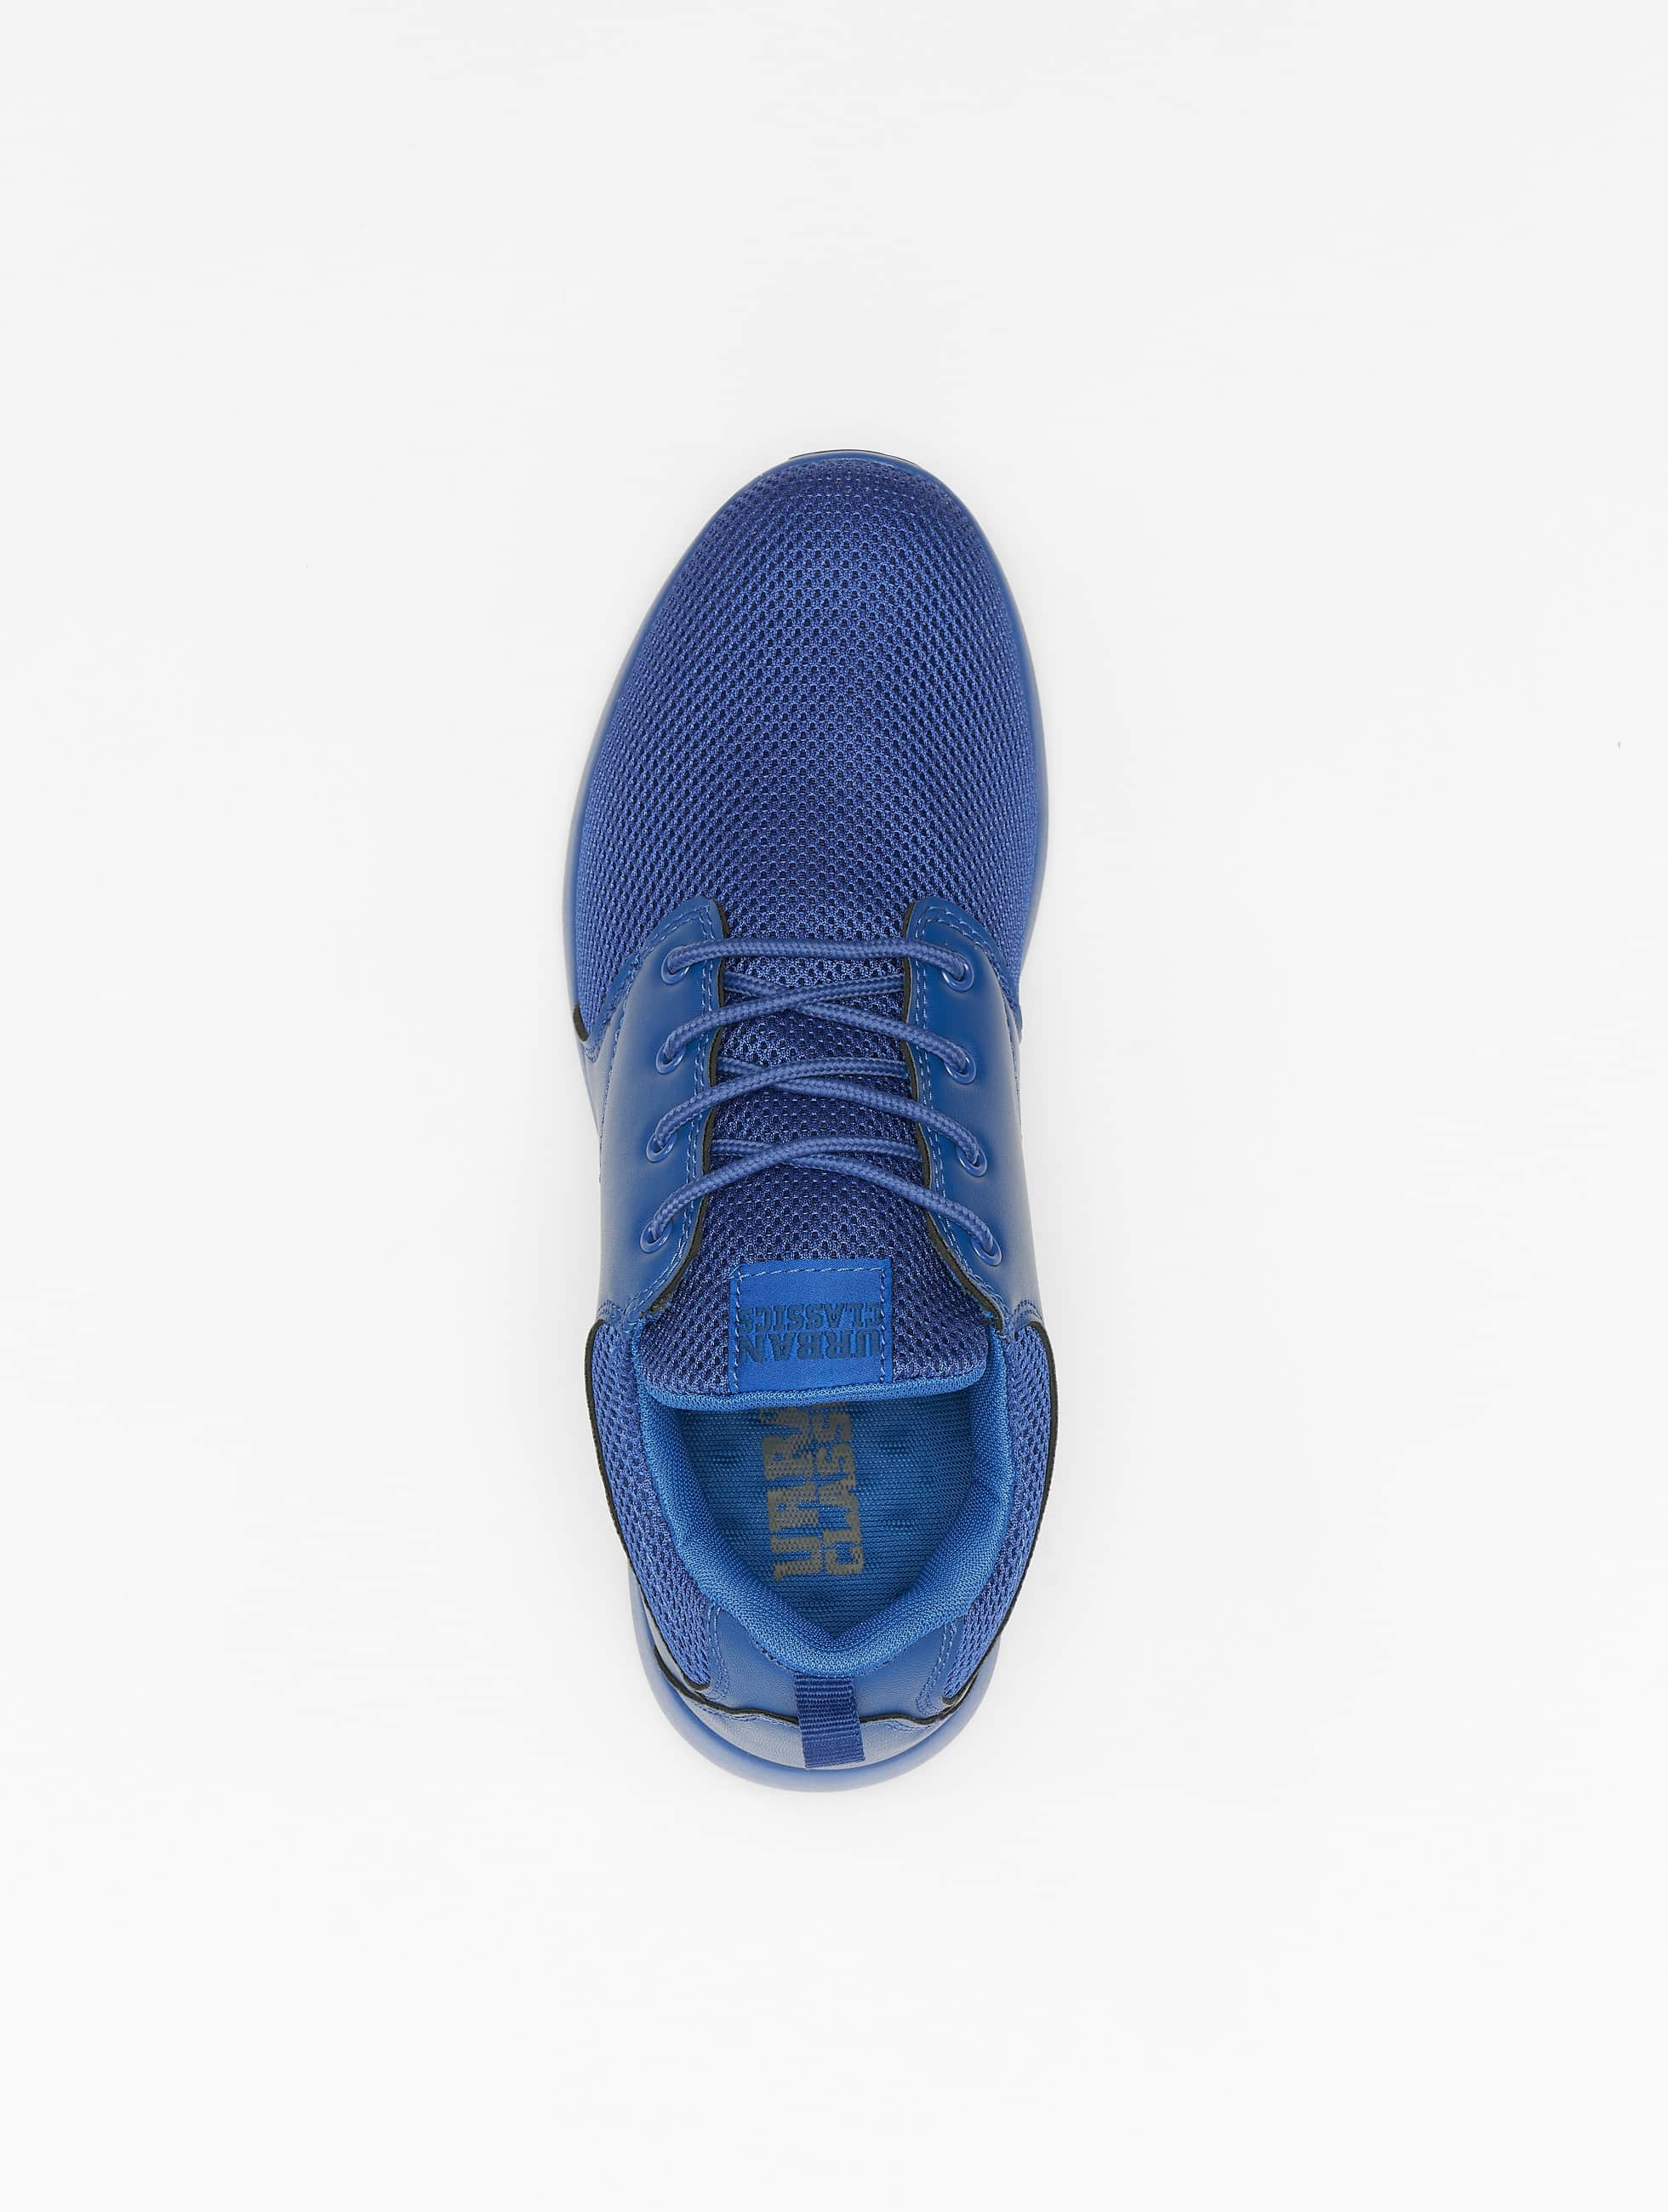 Urban Classics Sneakers Light Runner blue